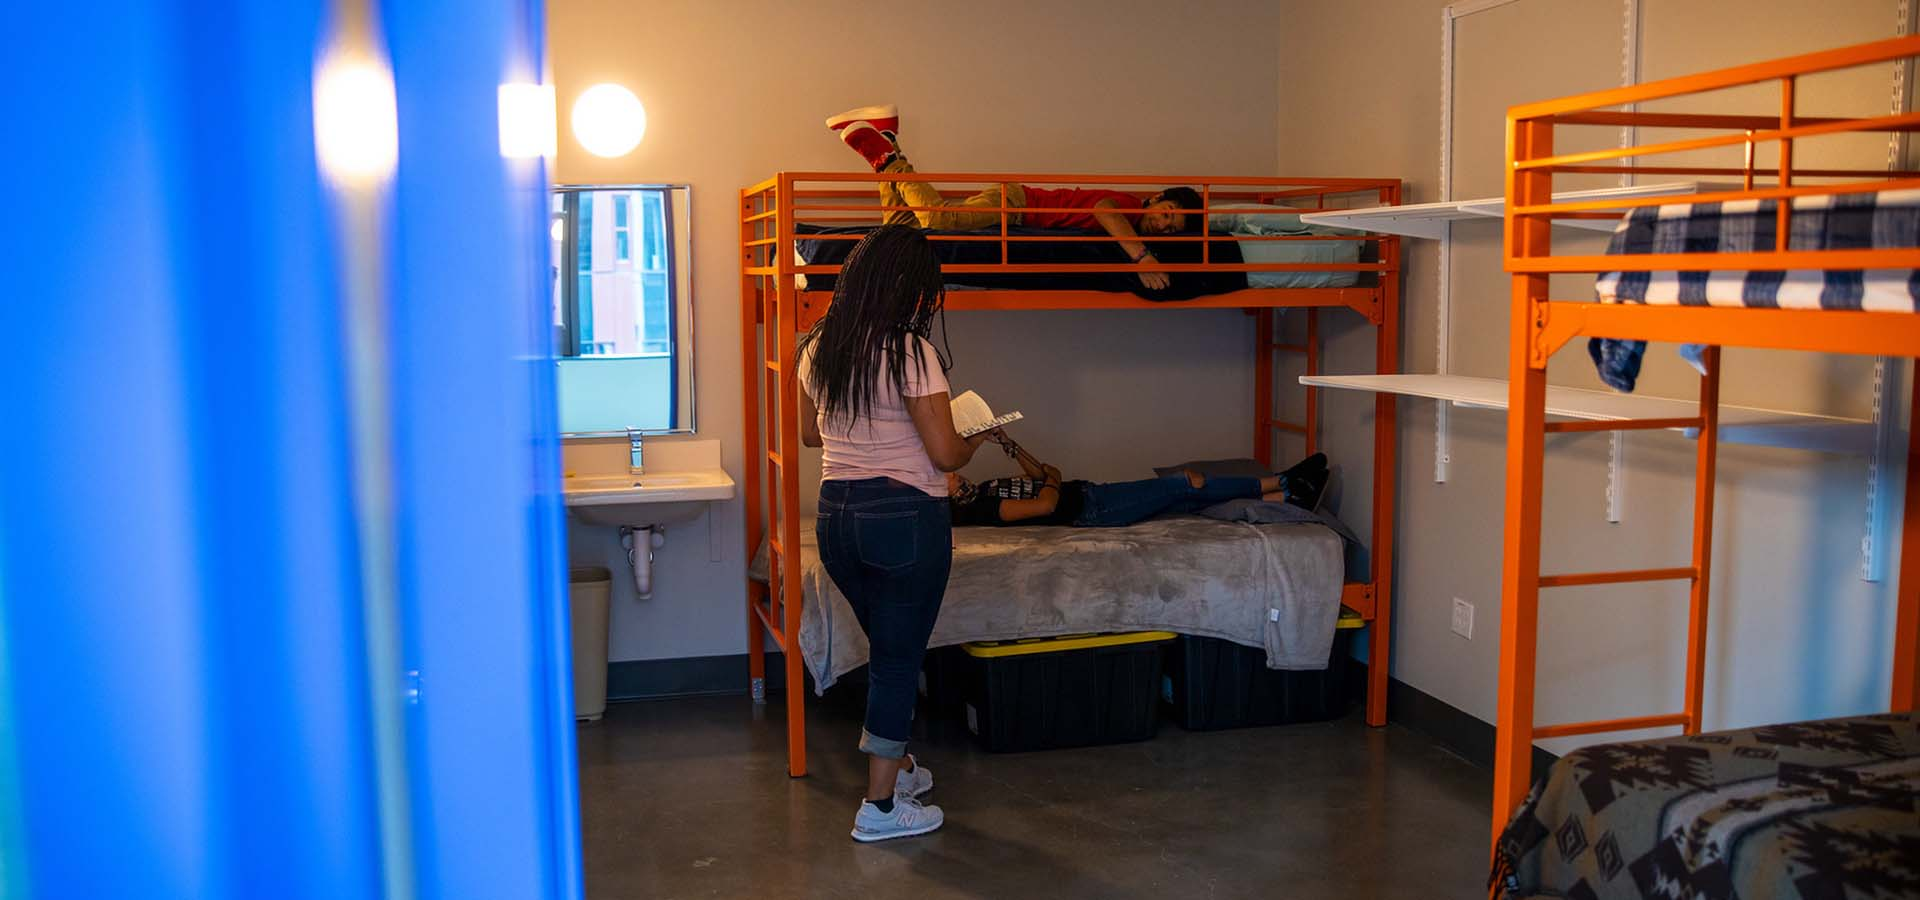 Volunteer shelter worker speaking with kids on a bunk bed.